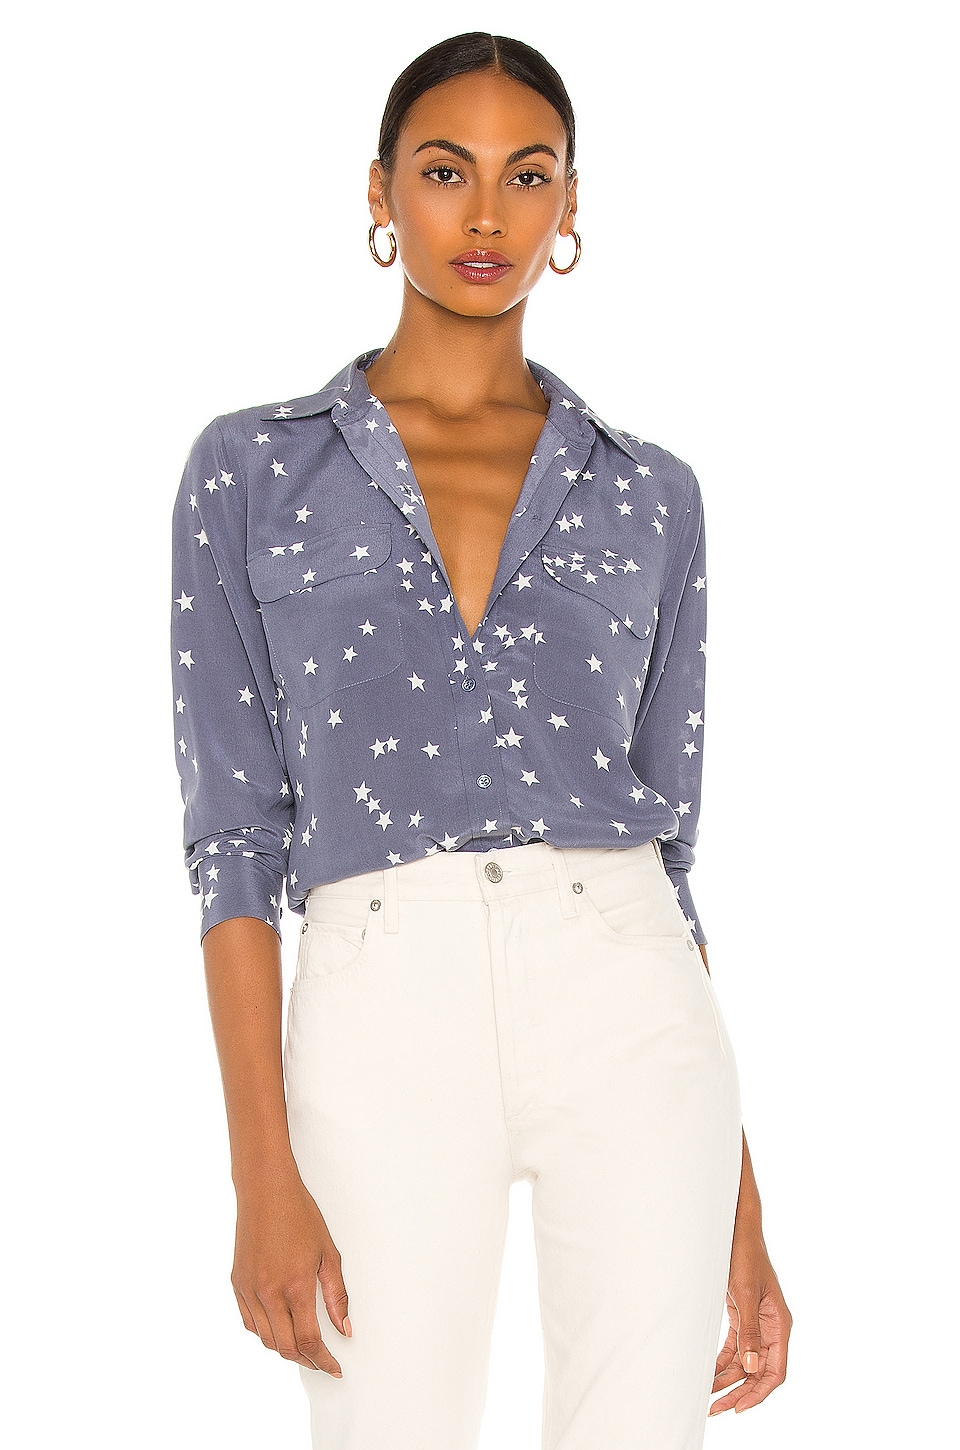 Equipment Starry Night Slim Signature Blouse in Blue Stone